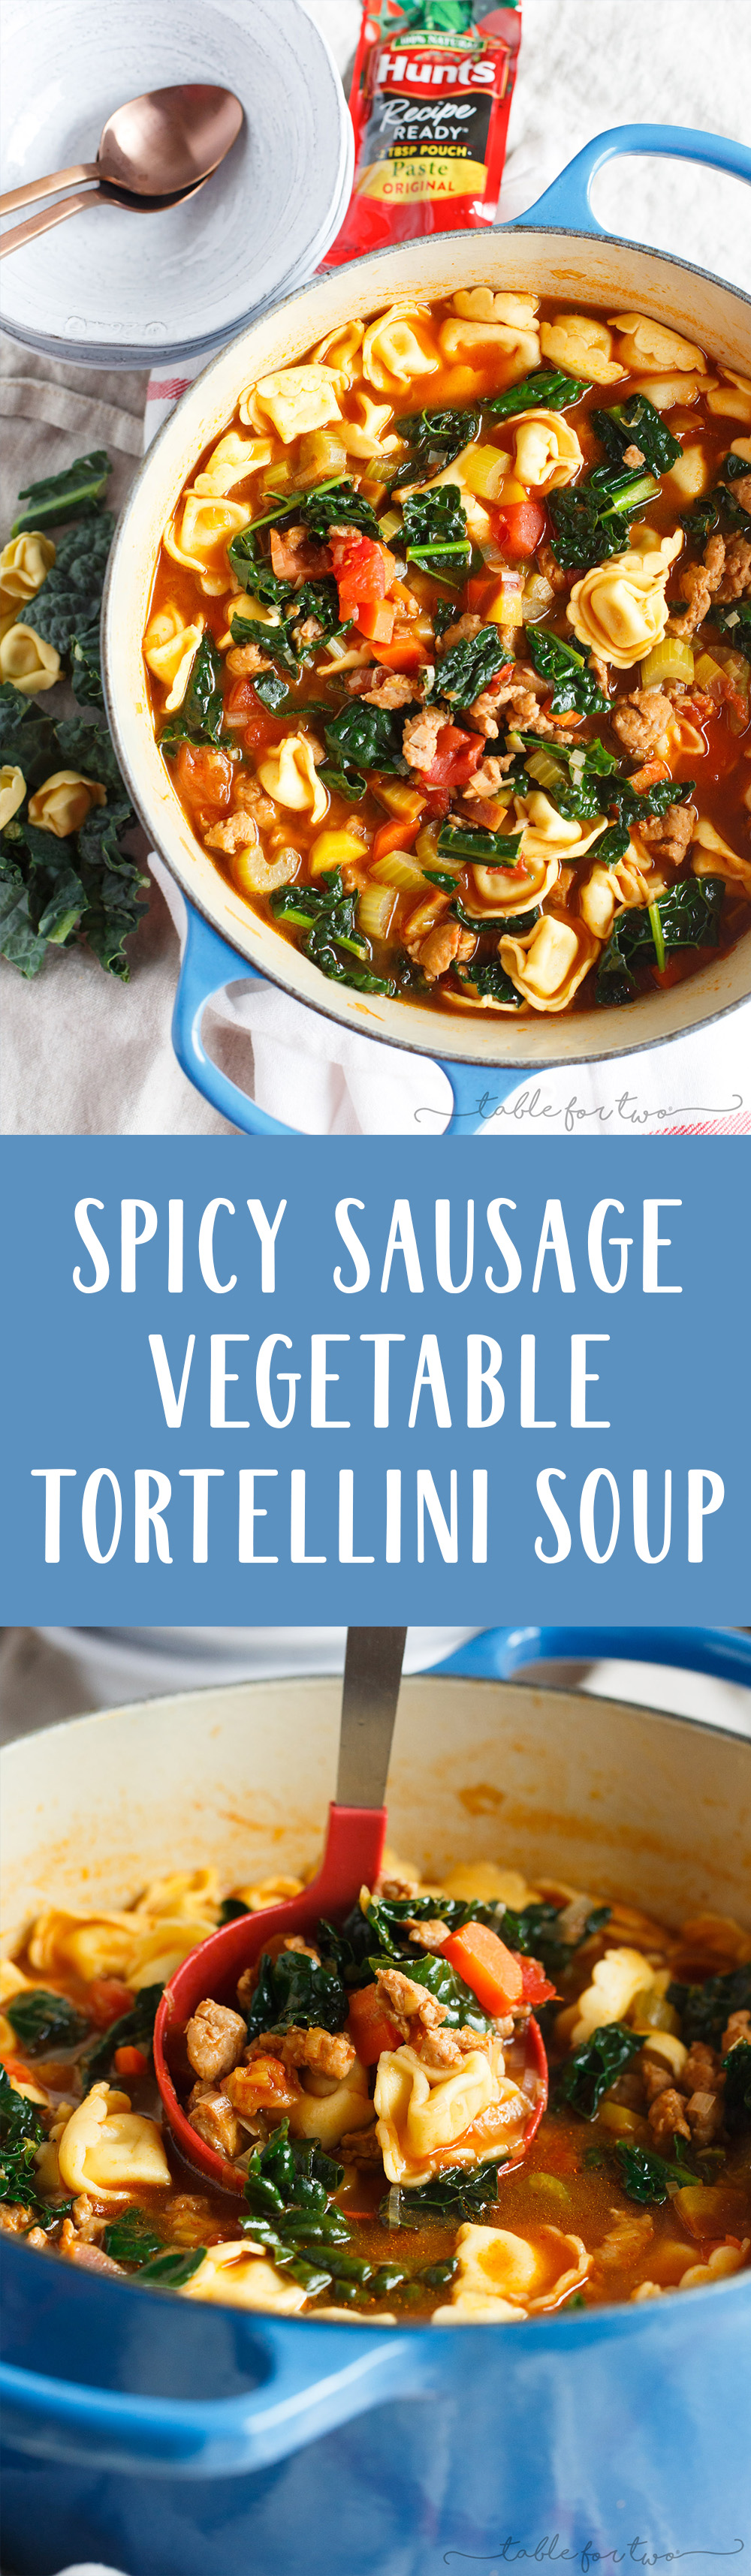 This spicy sausage and vegetable tortellini soup is exactly what you need when cold weather hits! Chock-full of veggies and cheesy tortellini; this soup will warm you right up!